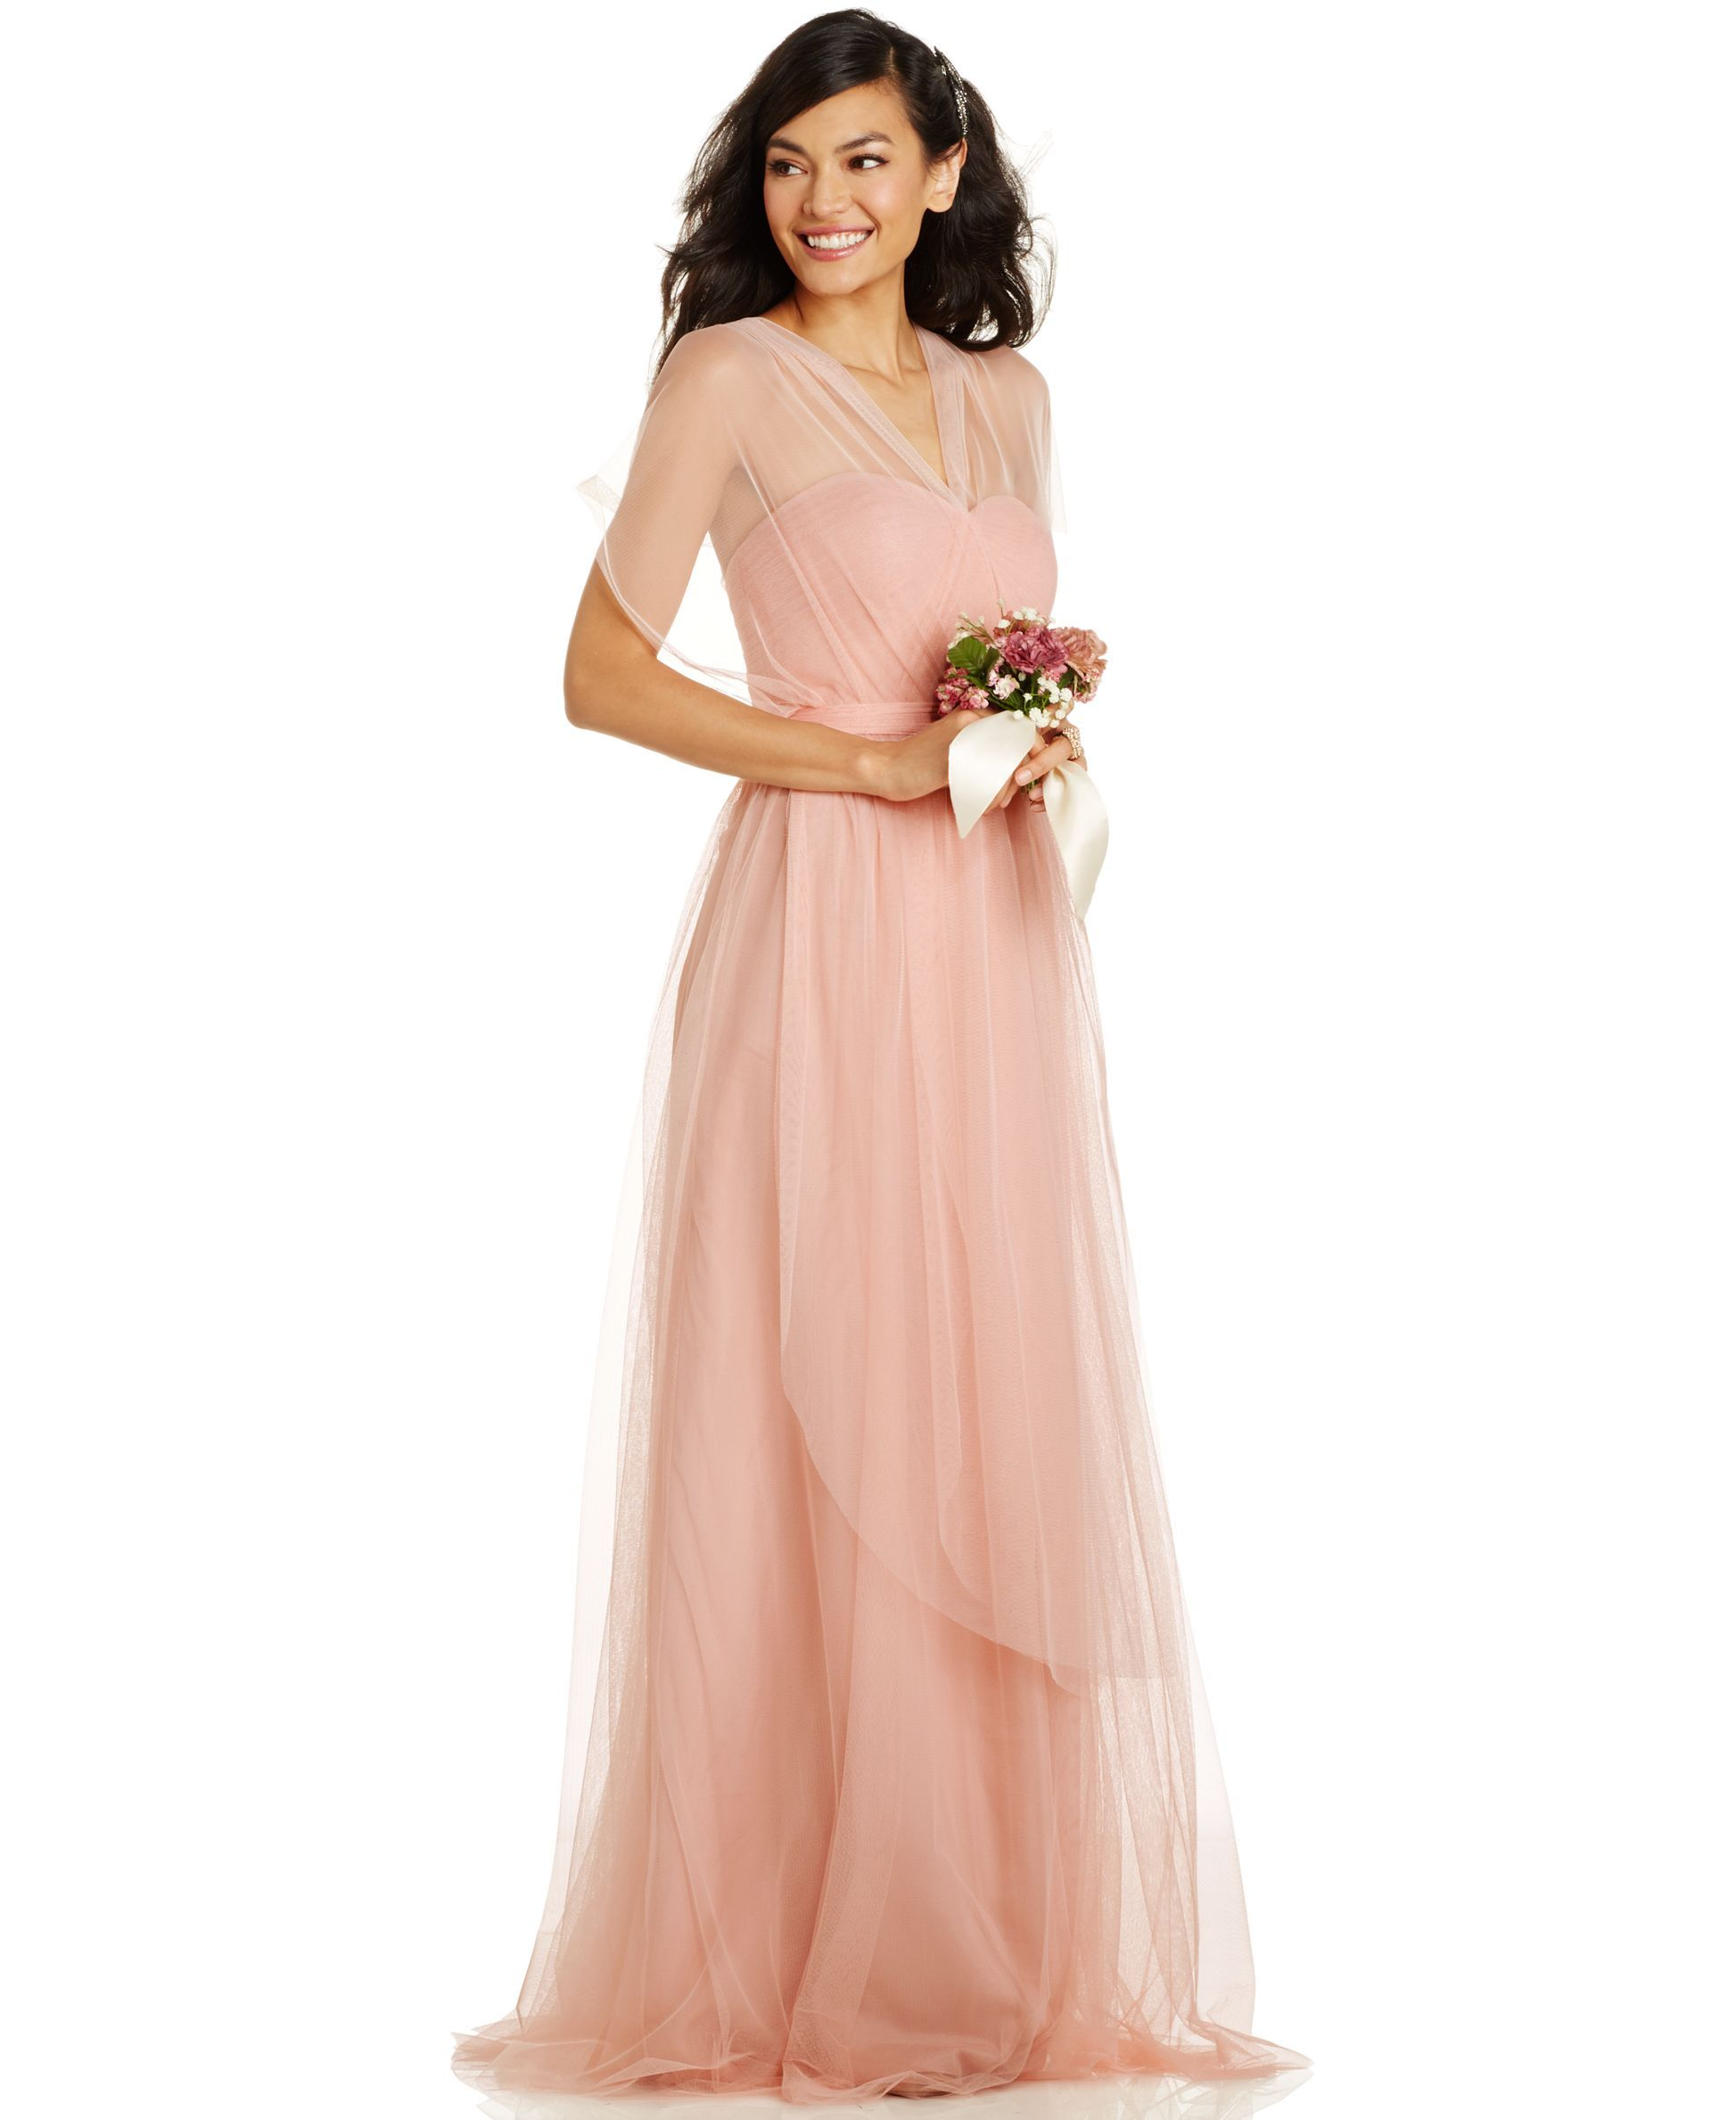 02f9fccae75af Bridesmaids: Adrianna Papell Pleated Strapless Tulle Gown in Mint. Love the  idea of a convertible dress - then everyone gets what they want.